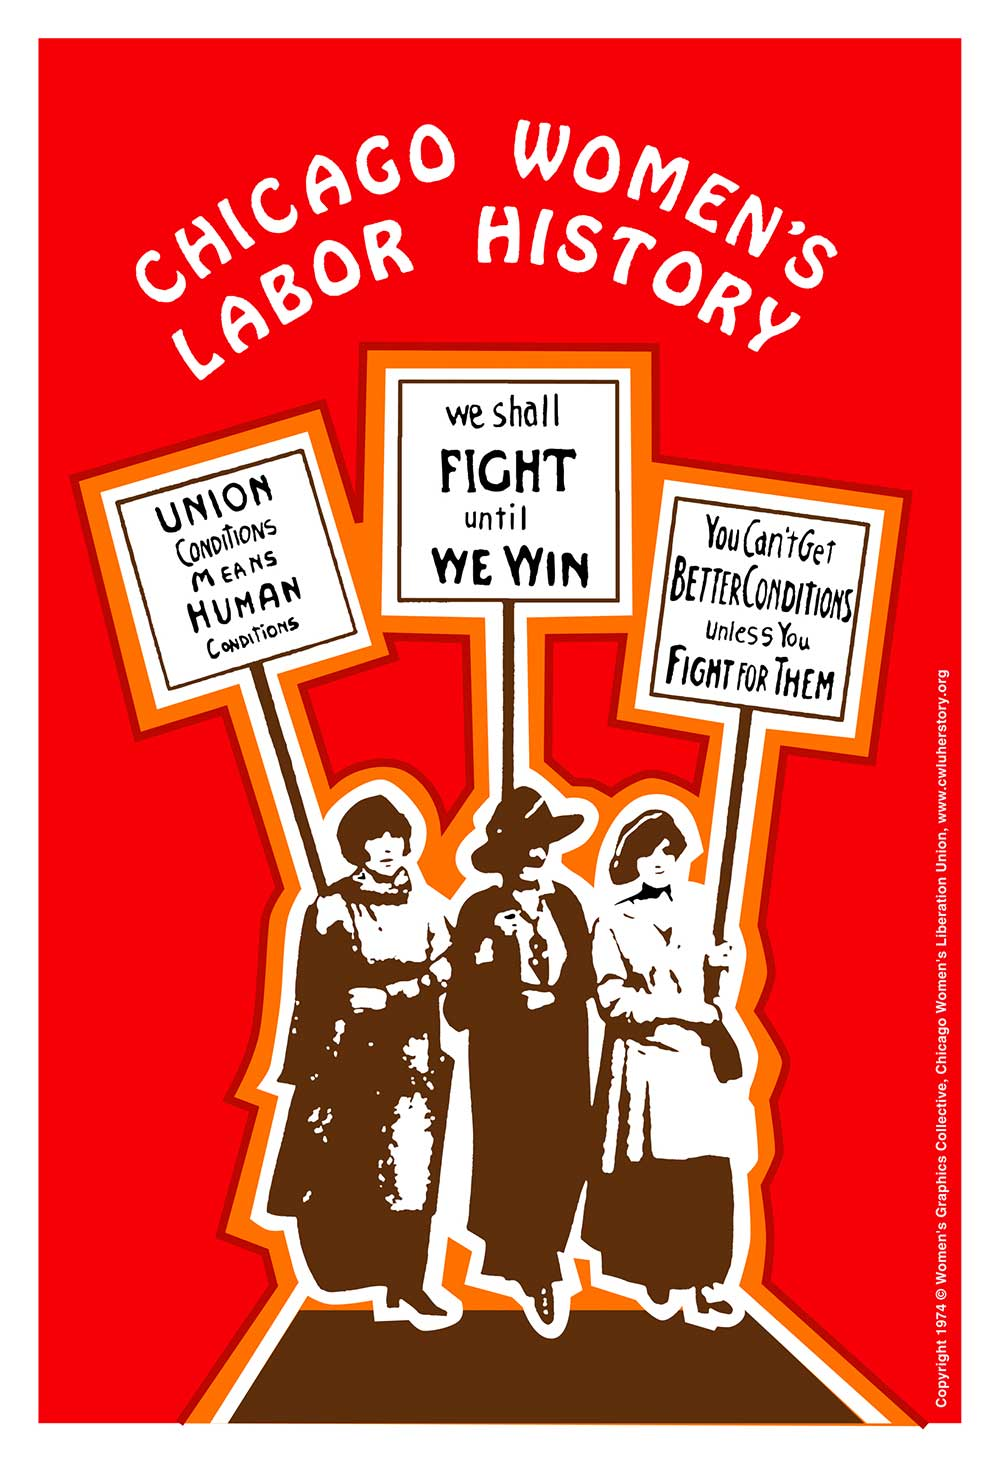 Chicago Women's Labor History